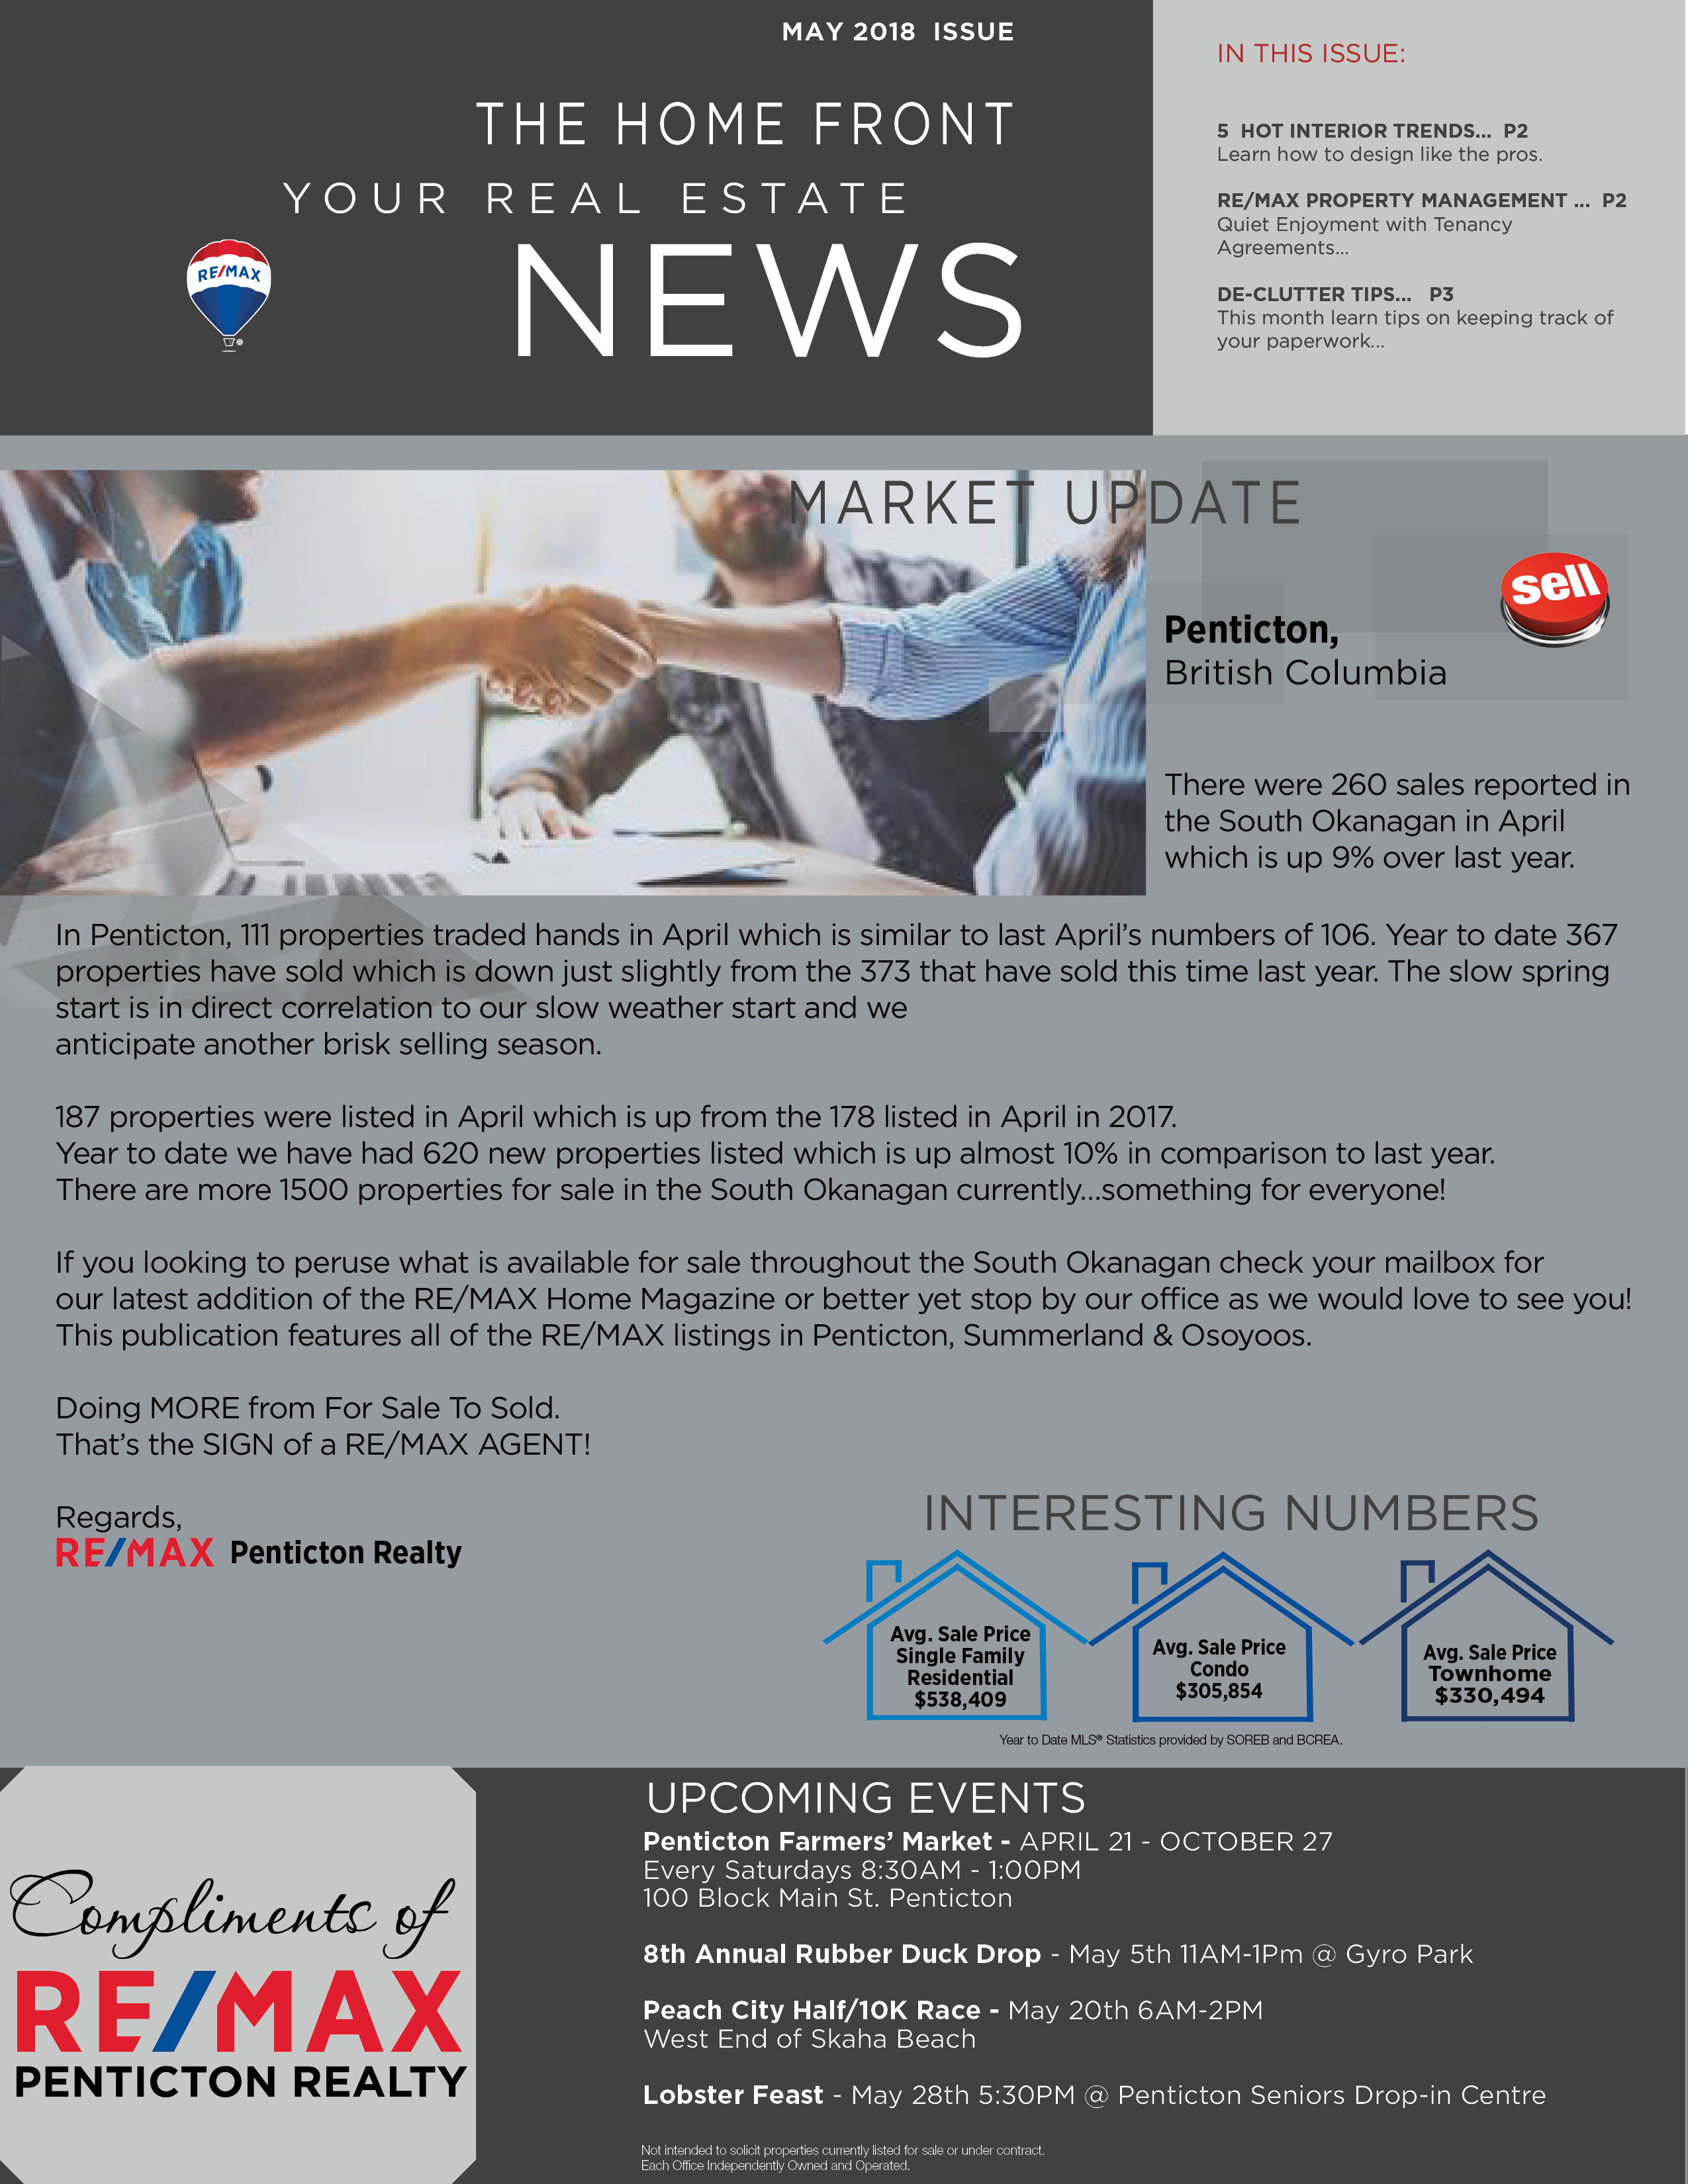 WEBIMAGES: MAY 2018 REMAX Newsletter_2.jpg